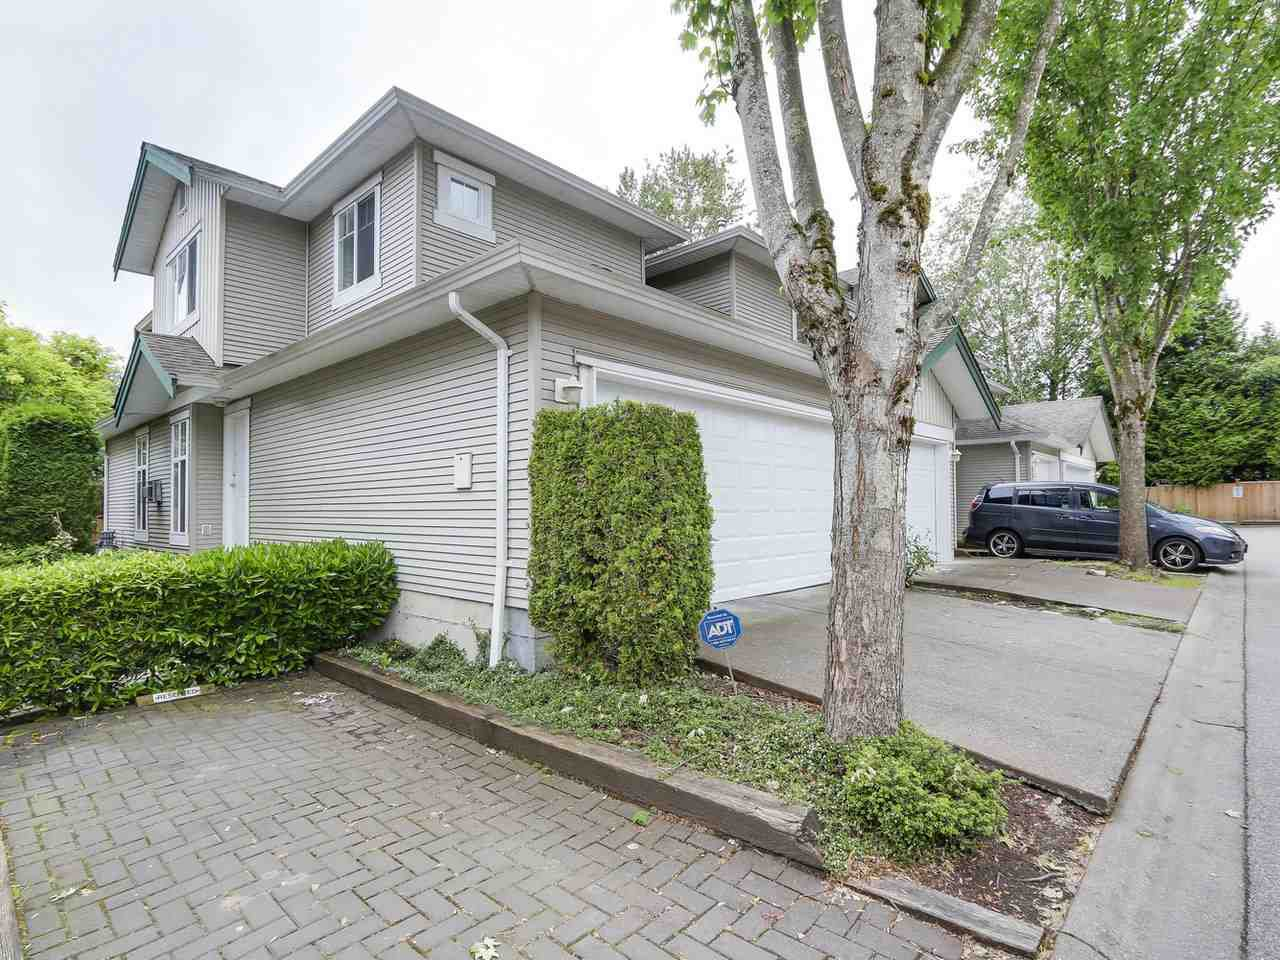 Main Photo: 12 6747 137 STREET in Surrey: East Newton Townhouse for sale : MLS®# R2171314